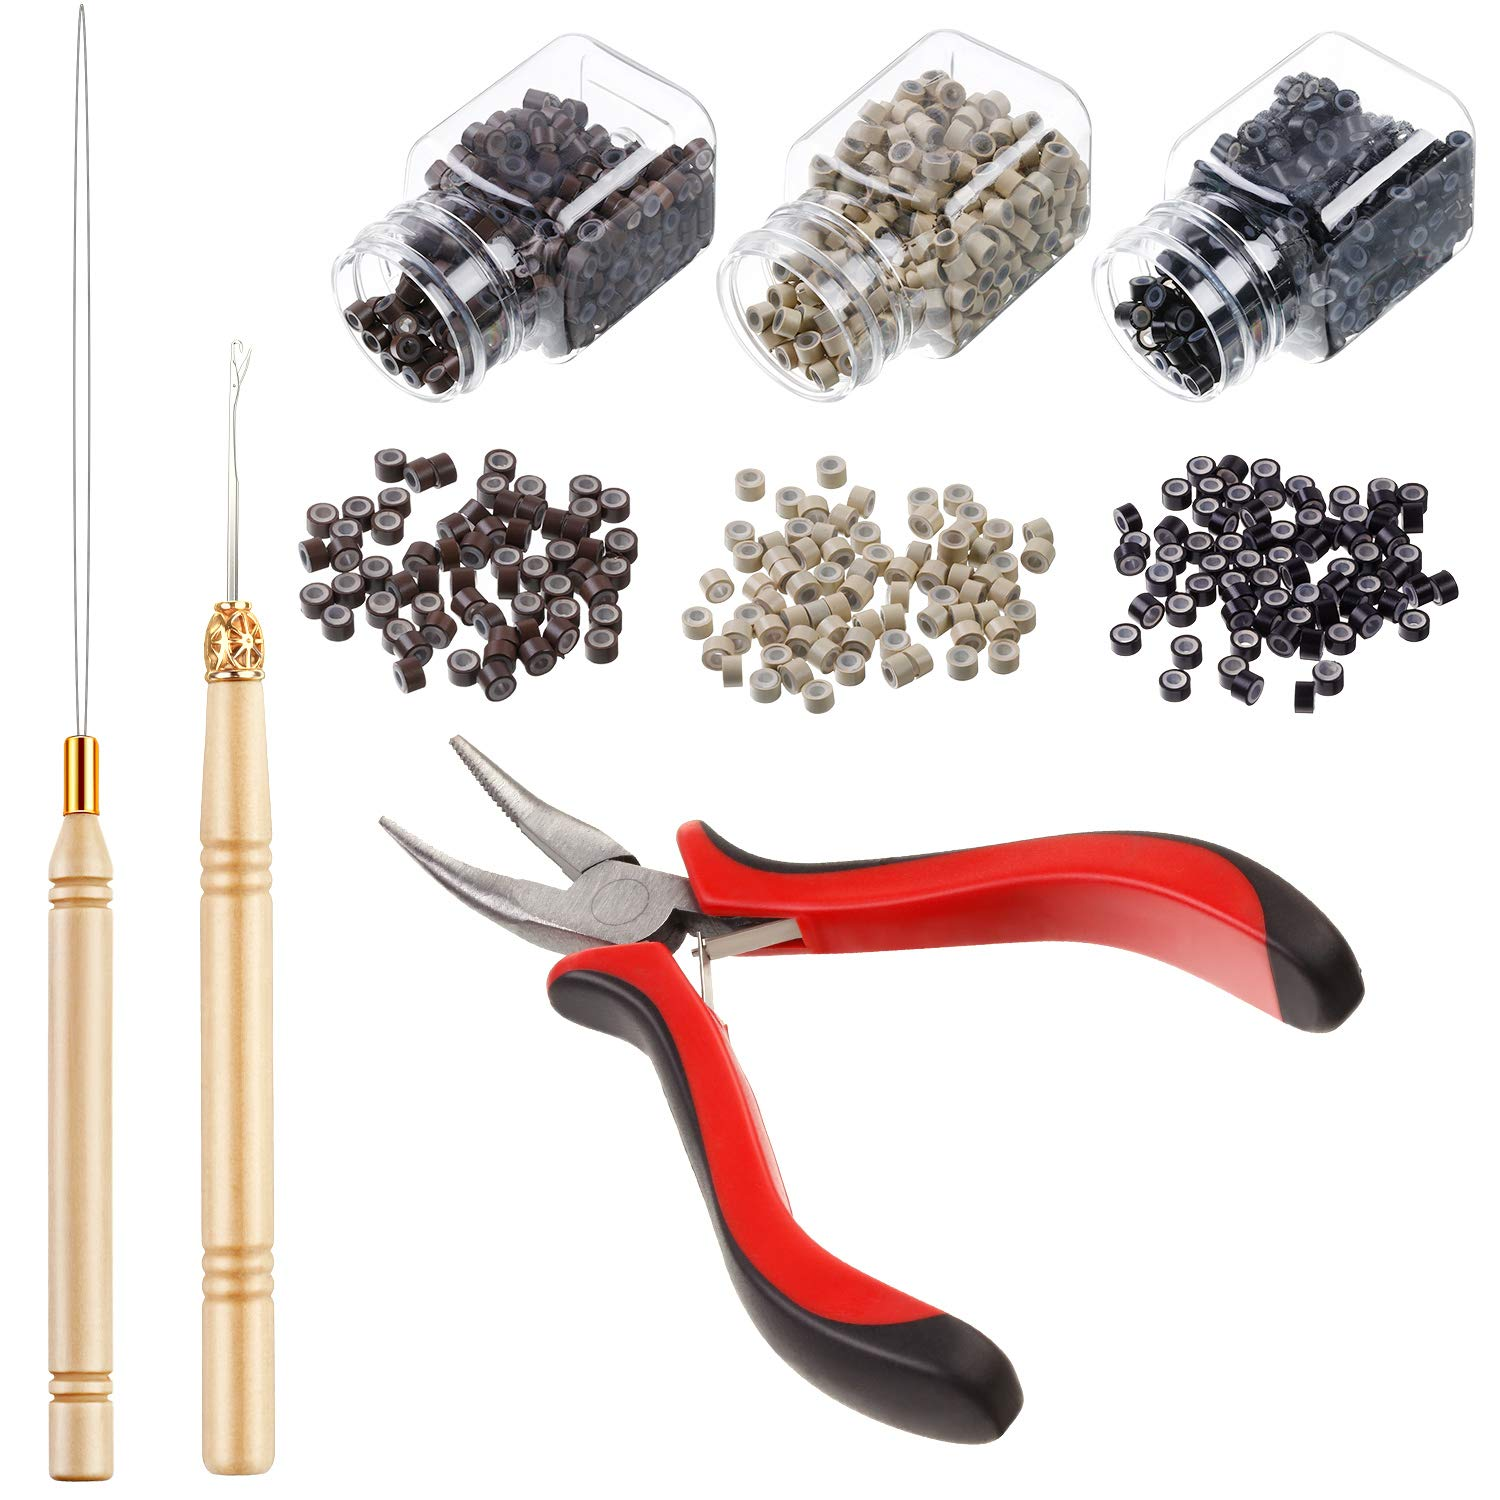 Hair Extension Kit Pliers Pulling Hook Bead Device High quality and El Paso Mall Tool Kits